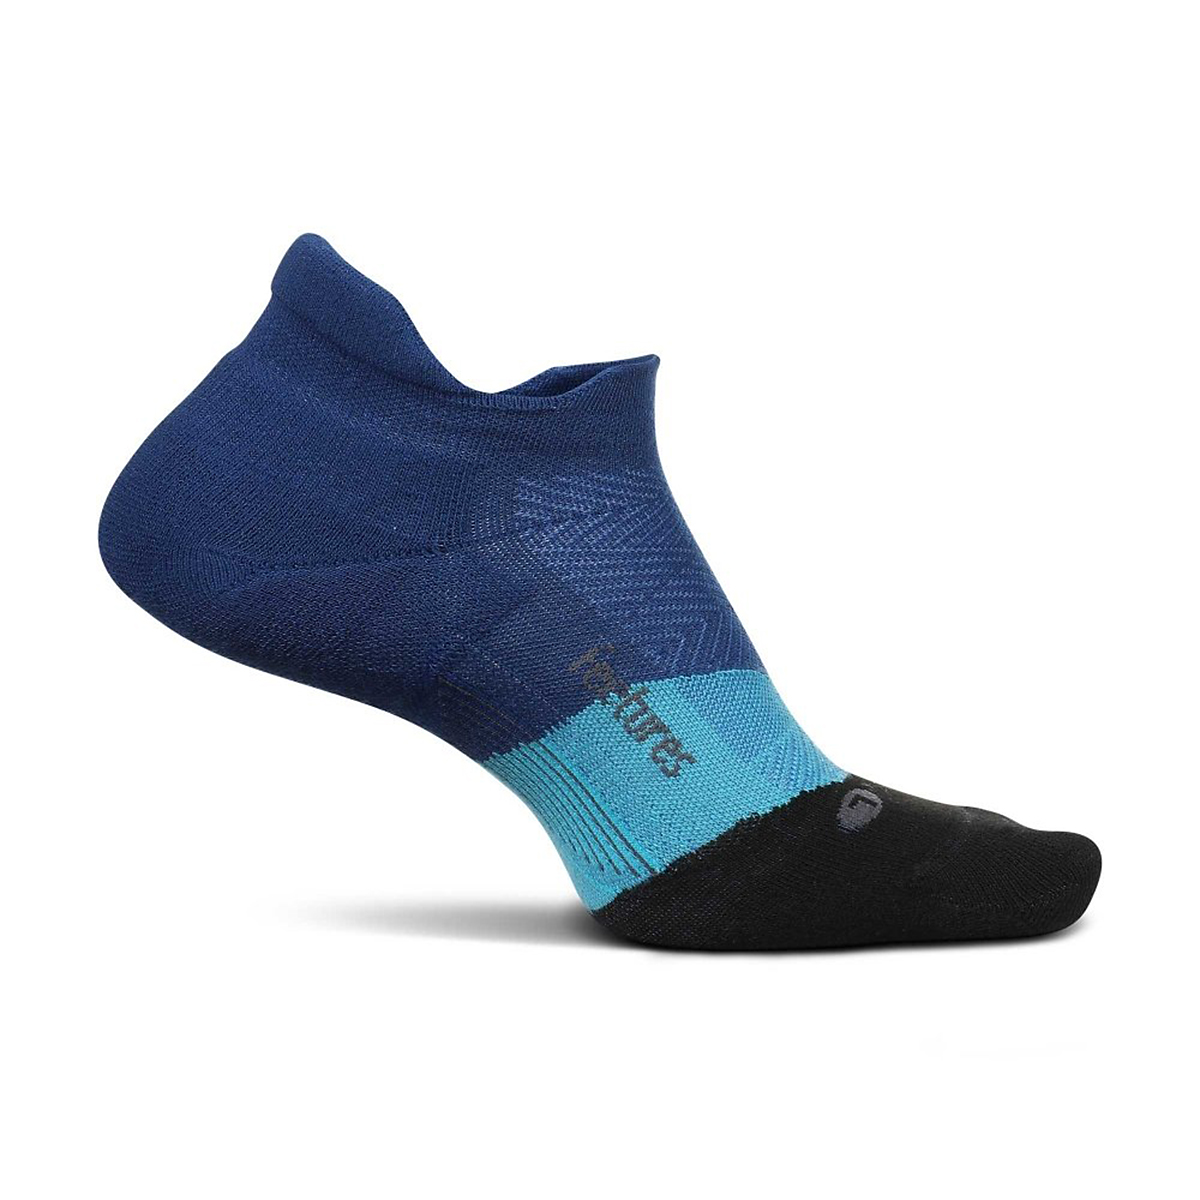 Feetures Elite Max Cushion No Show Sock - Color: Oceanic - Size: S, Oceanic, large, image 1